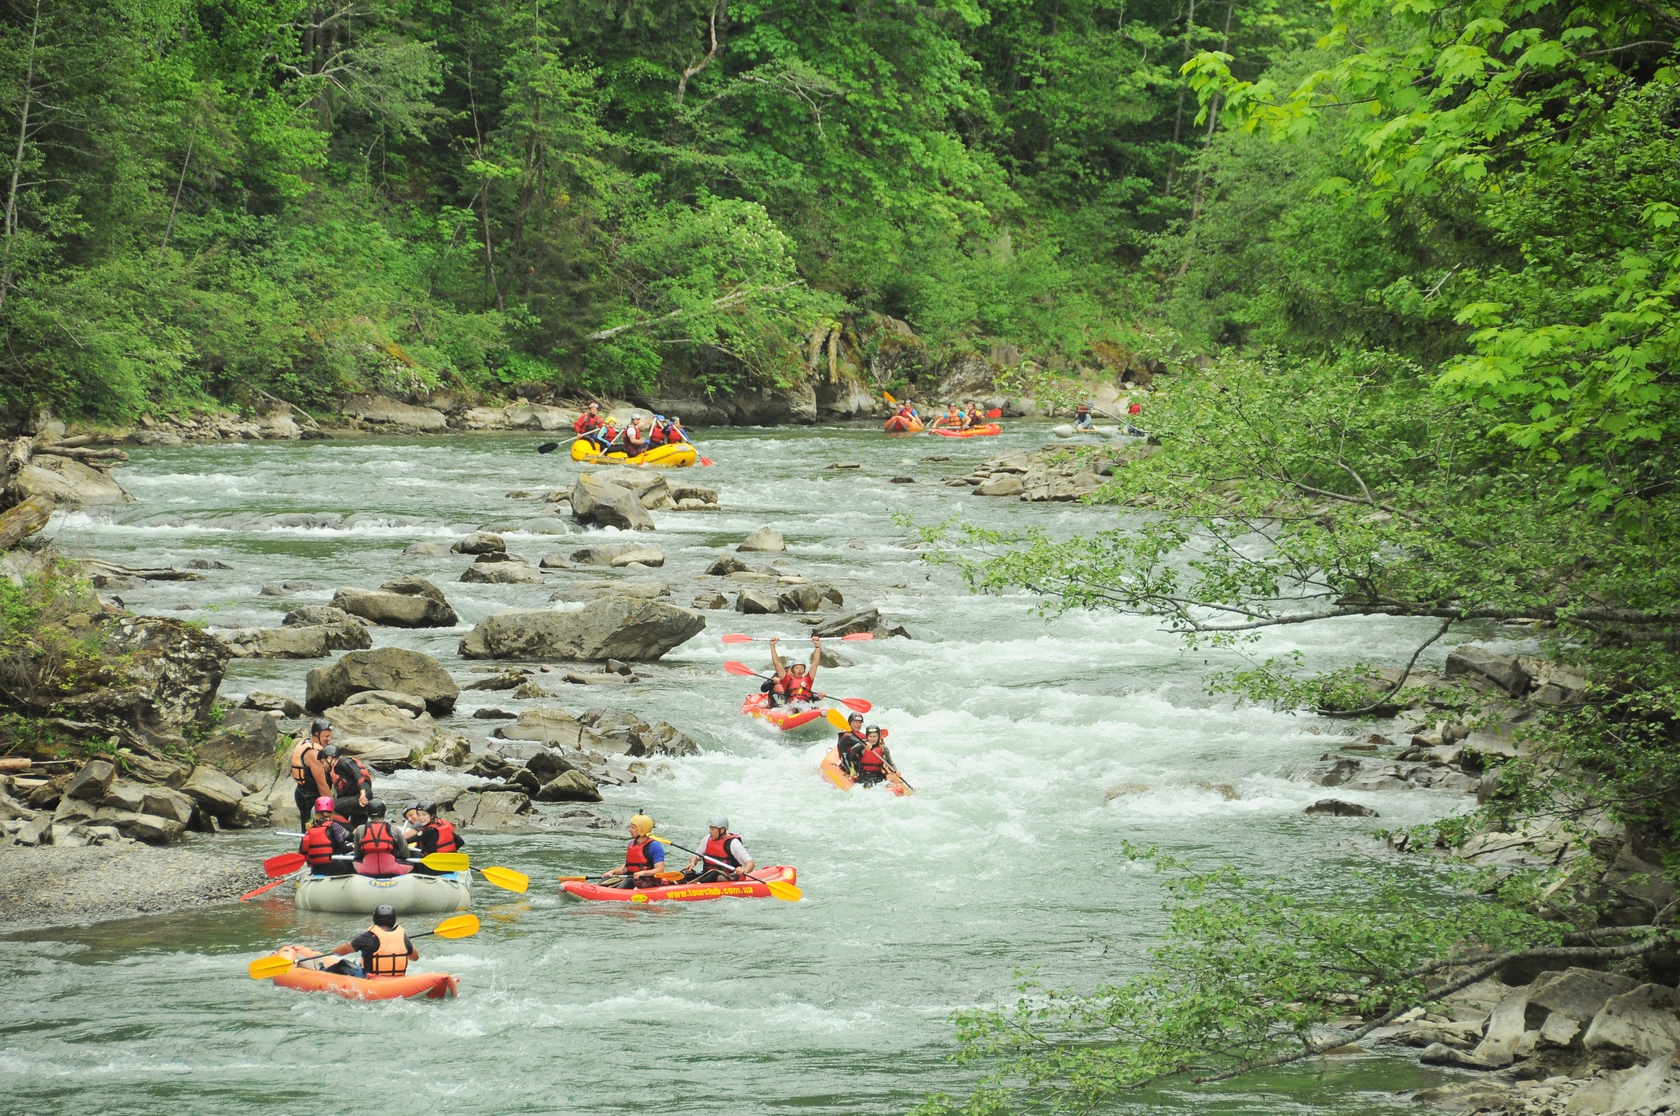 Rafting from Rada Daraba camp